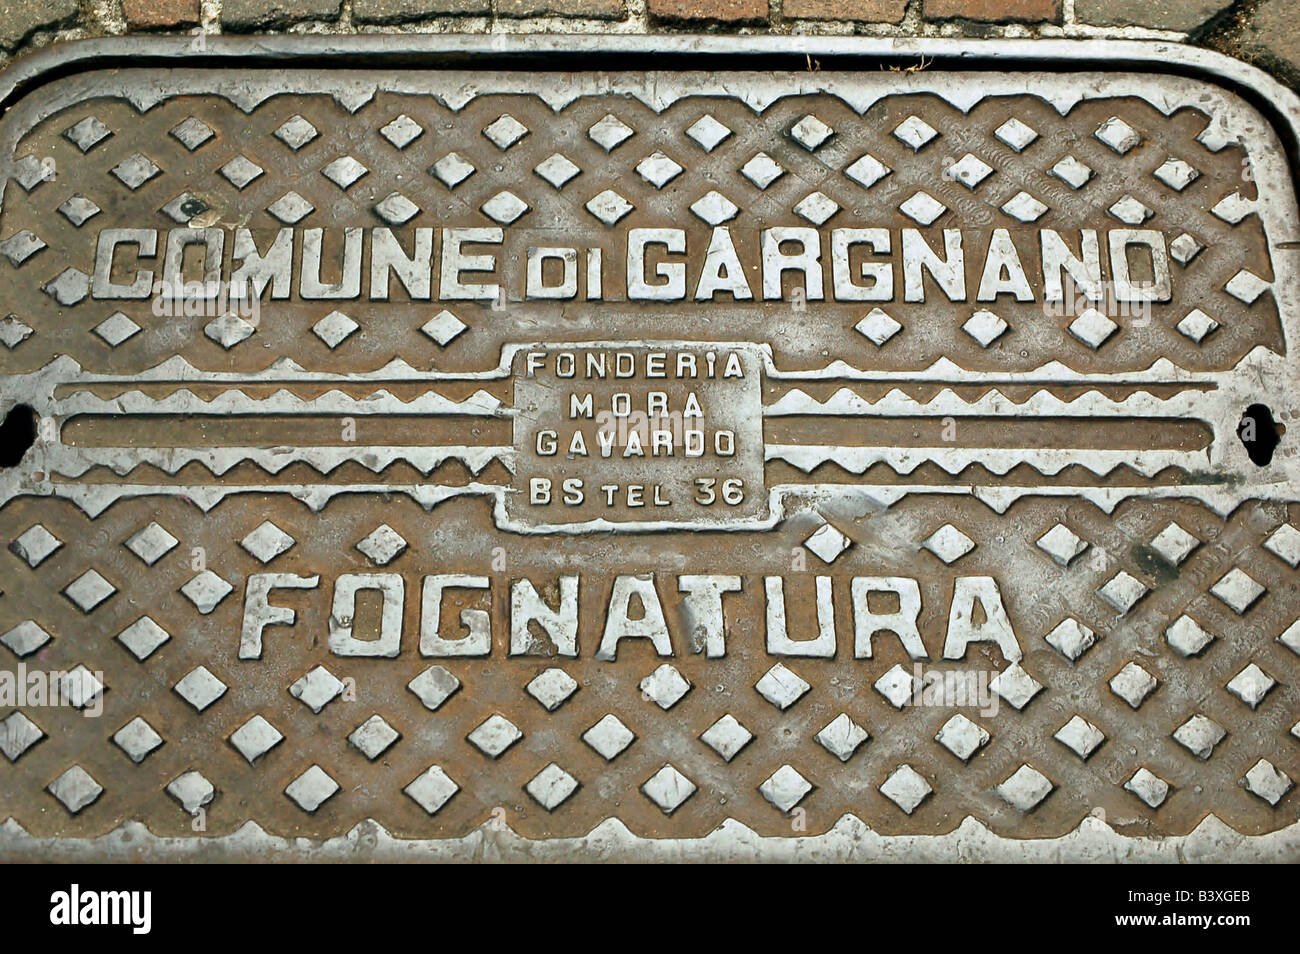 Manhole Cover in Gargnano - Stock Image